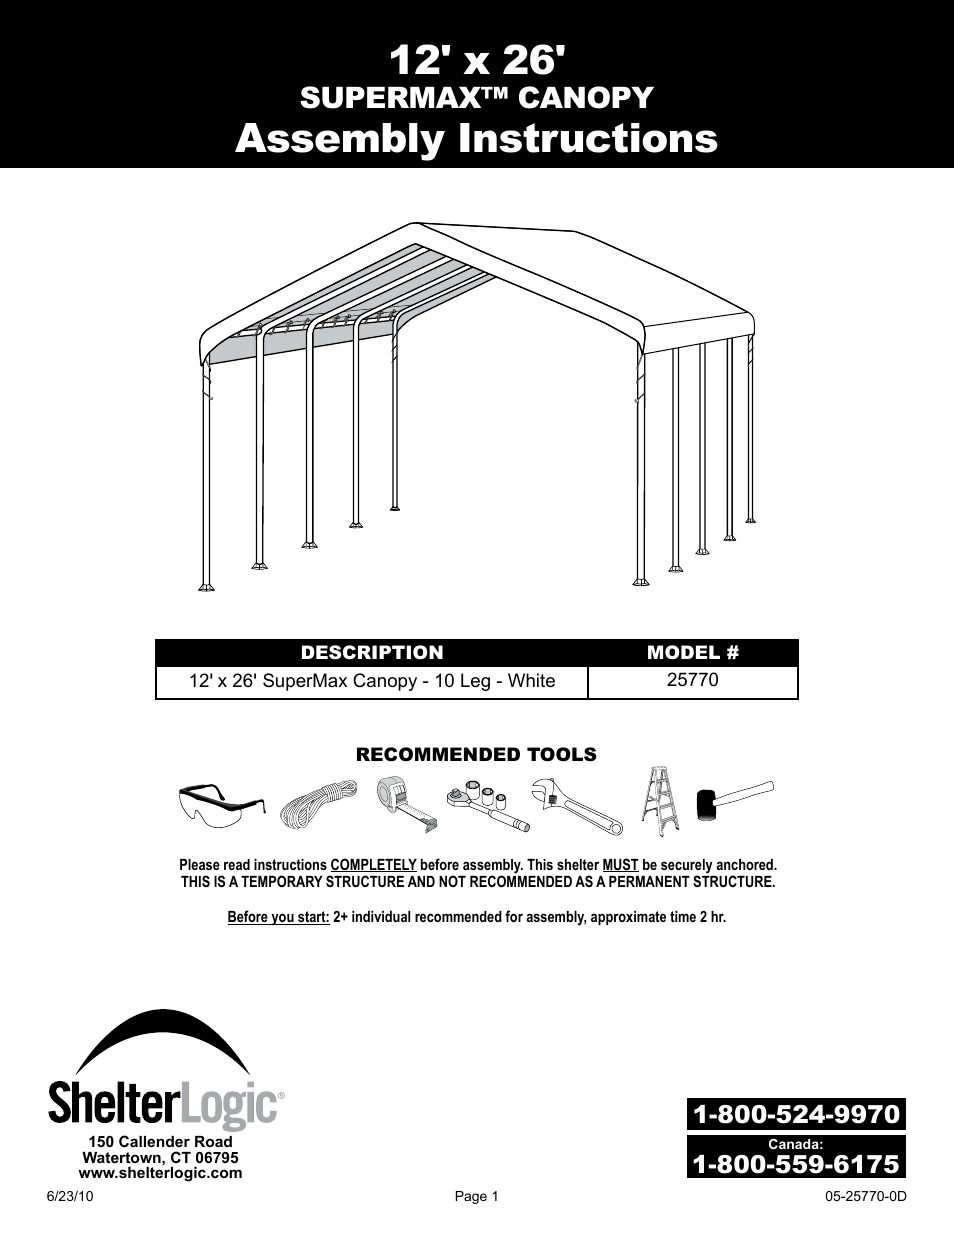 shelterlogic 29770 12 x 26 super max canopy user manual 21 pages rh manualsdir com Assembly Instruction Manuals Manual Assembly Resume